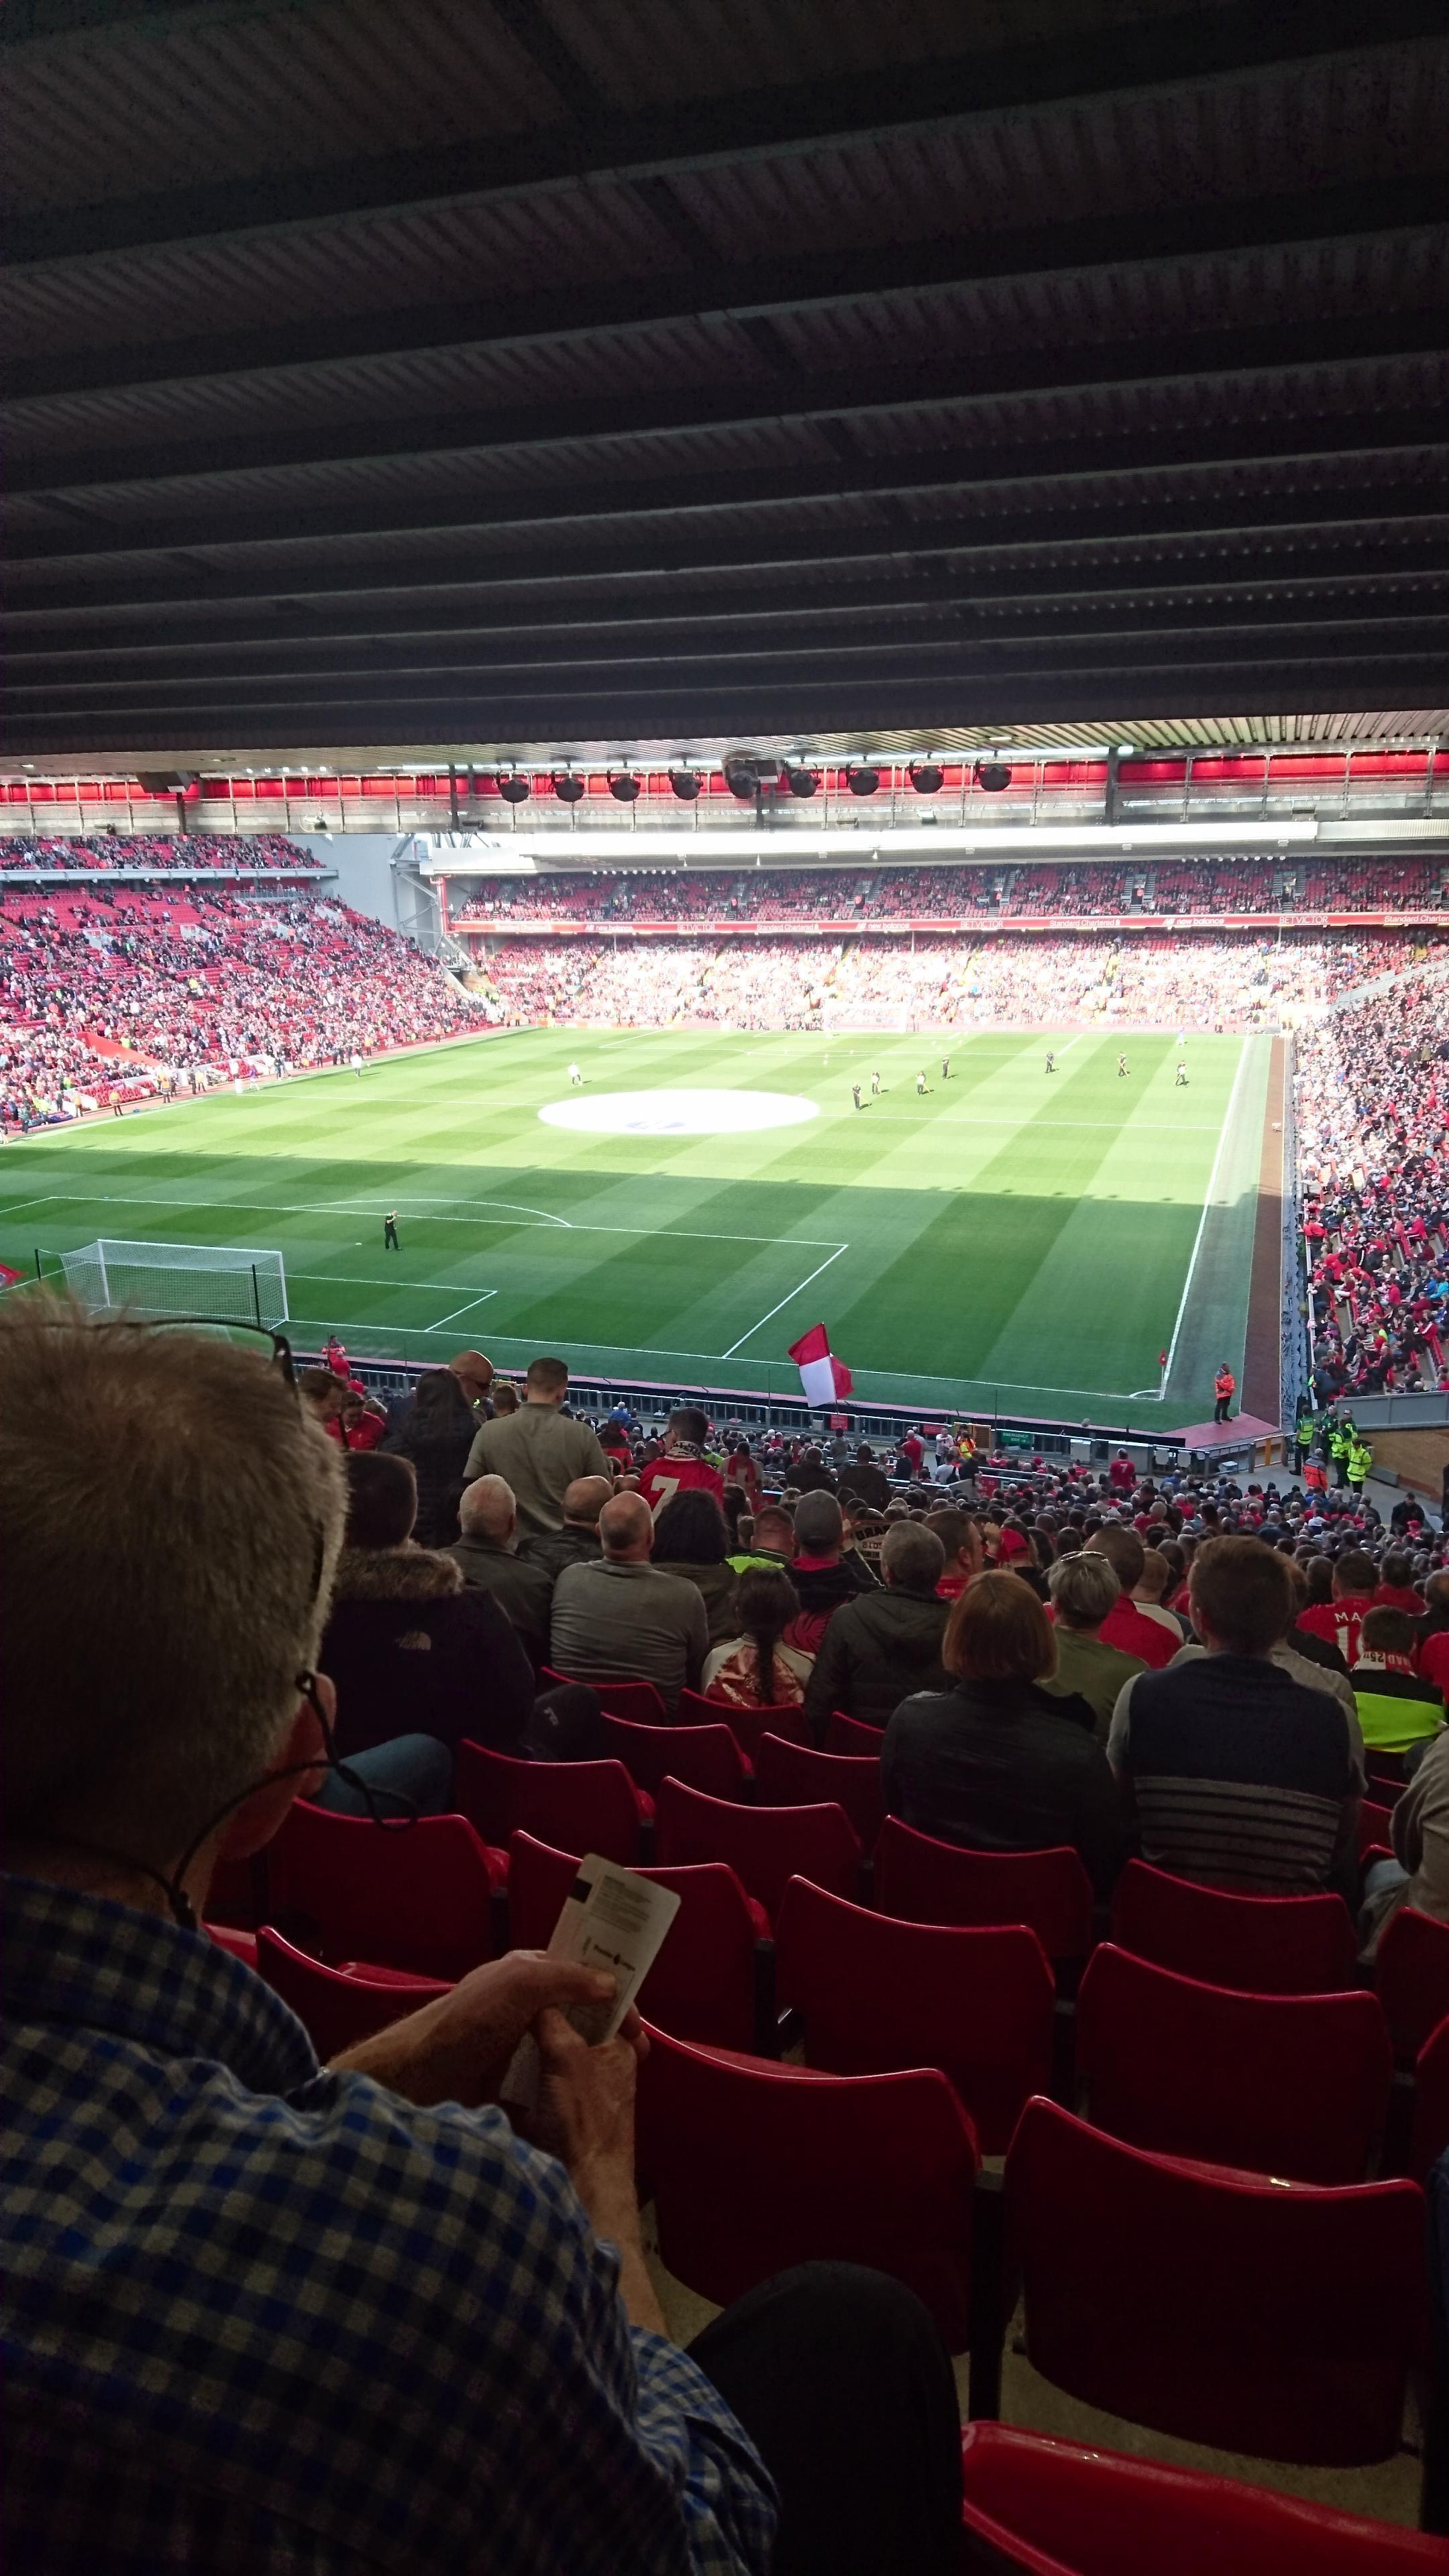 Anfield Section 207 Row 61 Seat 32